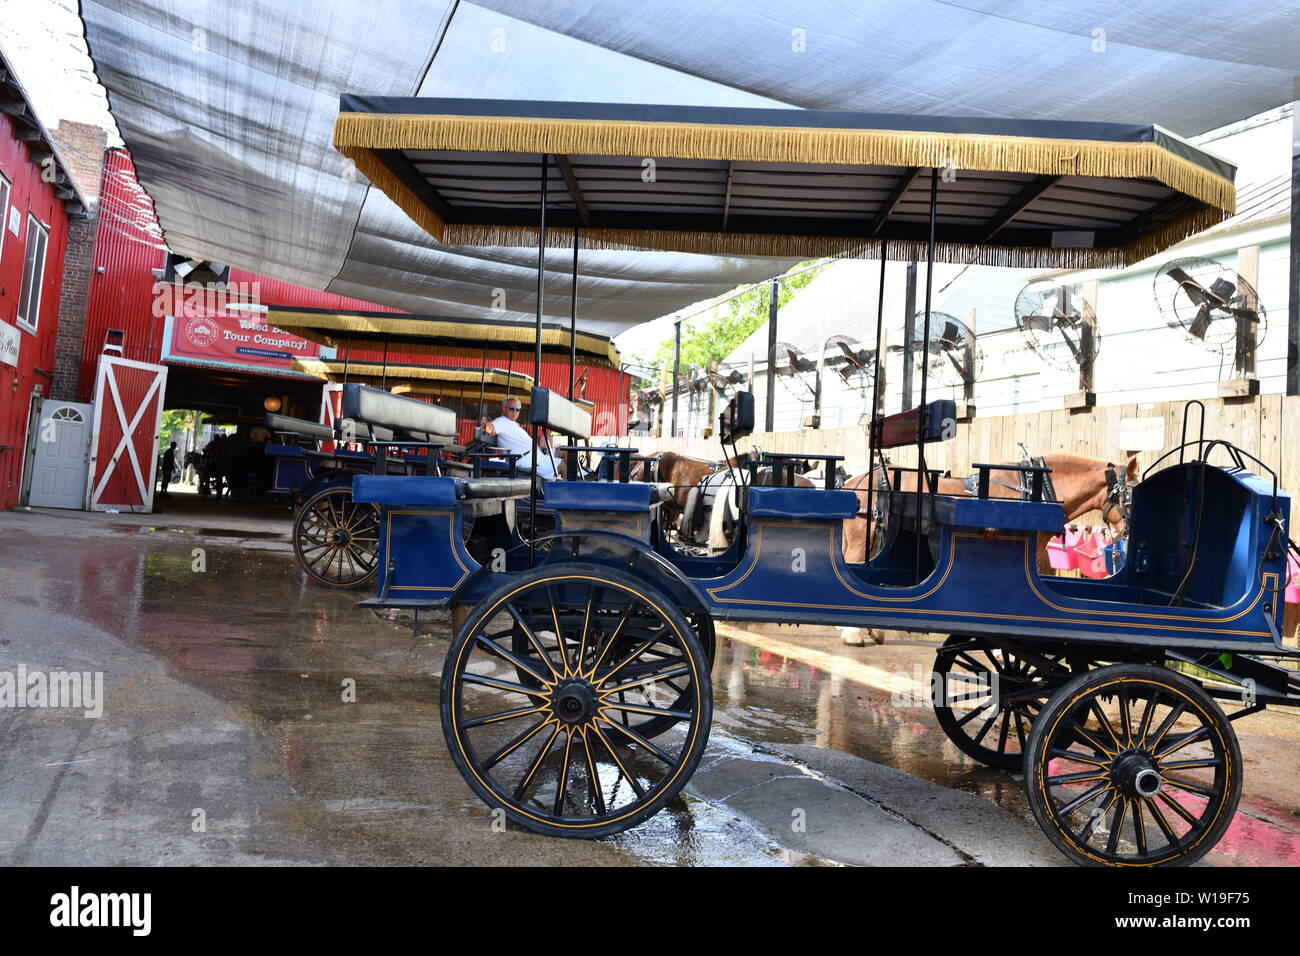 Horse and Carriage Works for Tourist Tours, Fans to Cool Horses, Plenty of Water, Personal Bathing of Horses, Stables, Open Doors, Visitors Welcome - Stock Image